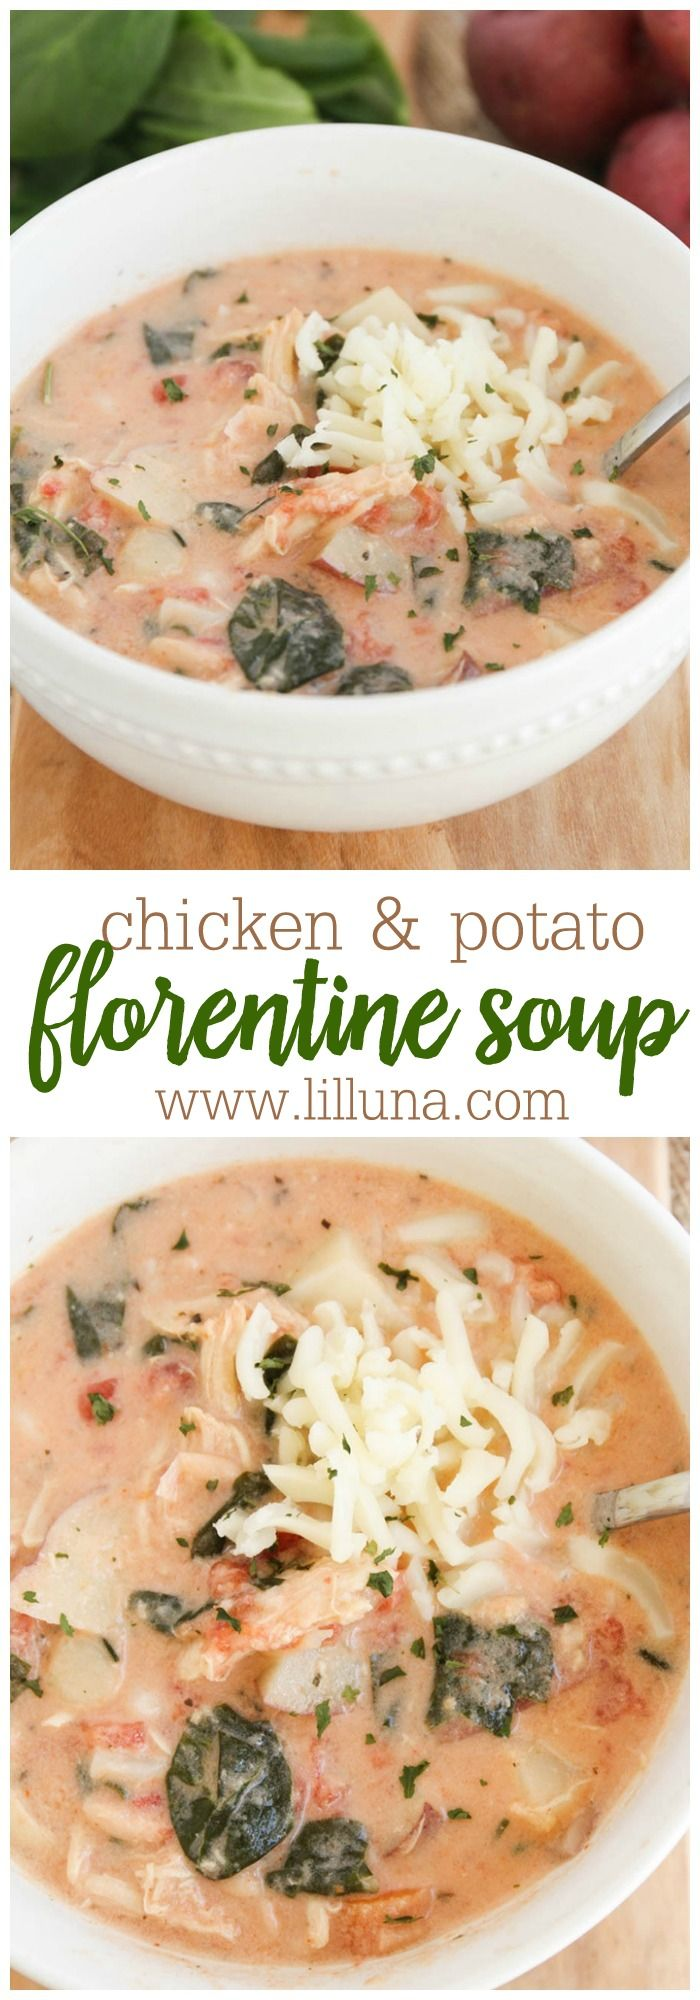 Chicken and Potato Florentine Soup recipe. Lots of flavor with chicken, potatoes, tomatoes, beans, & spinach! Yum!